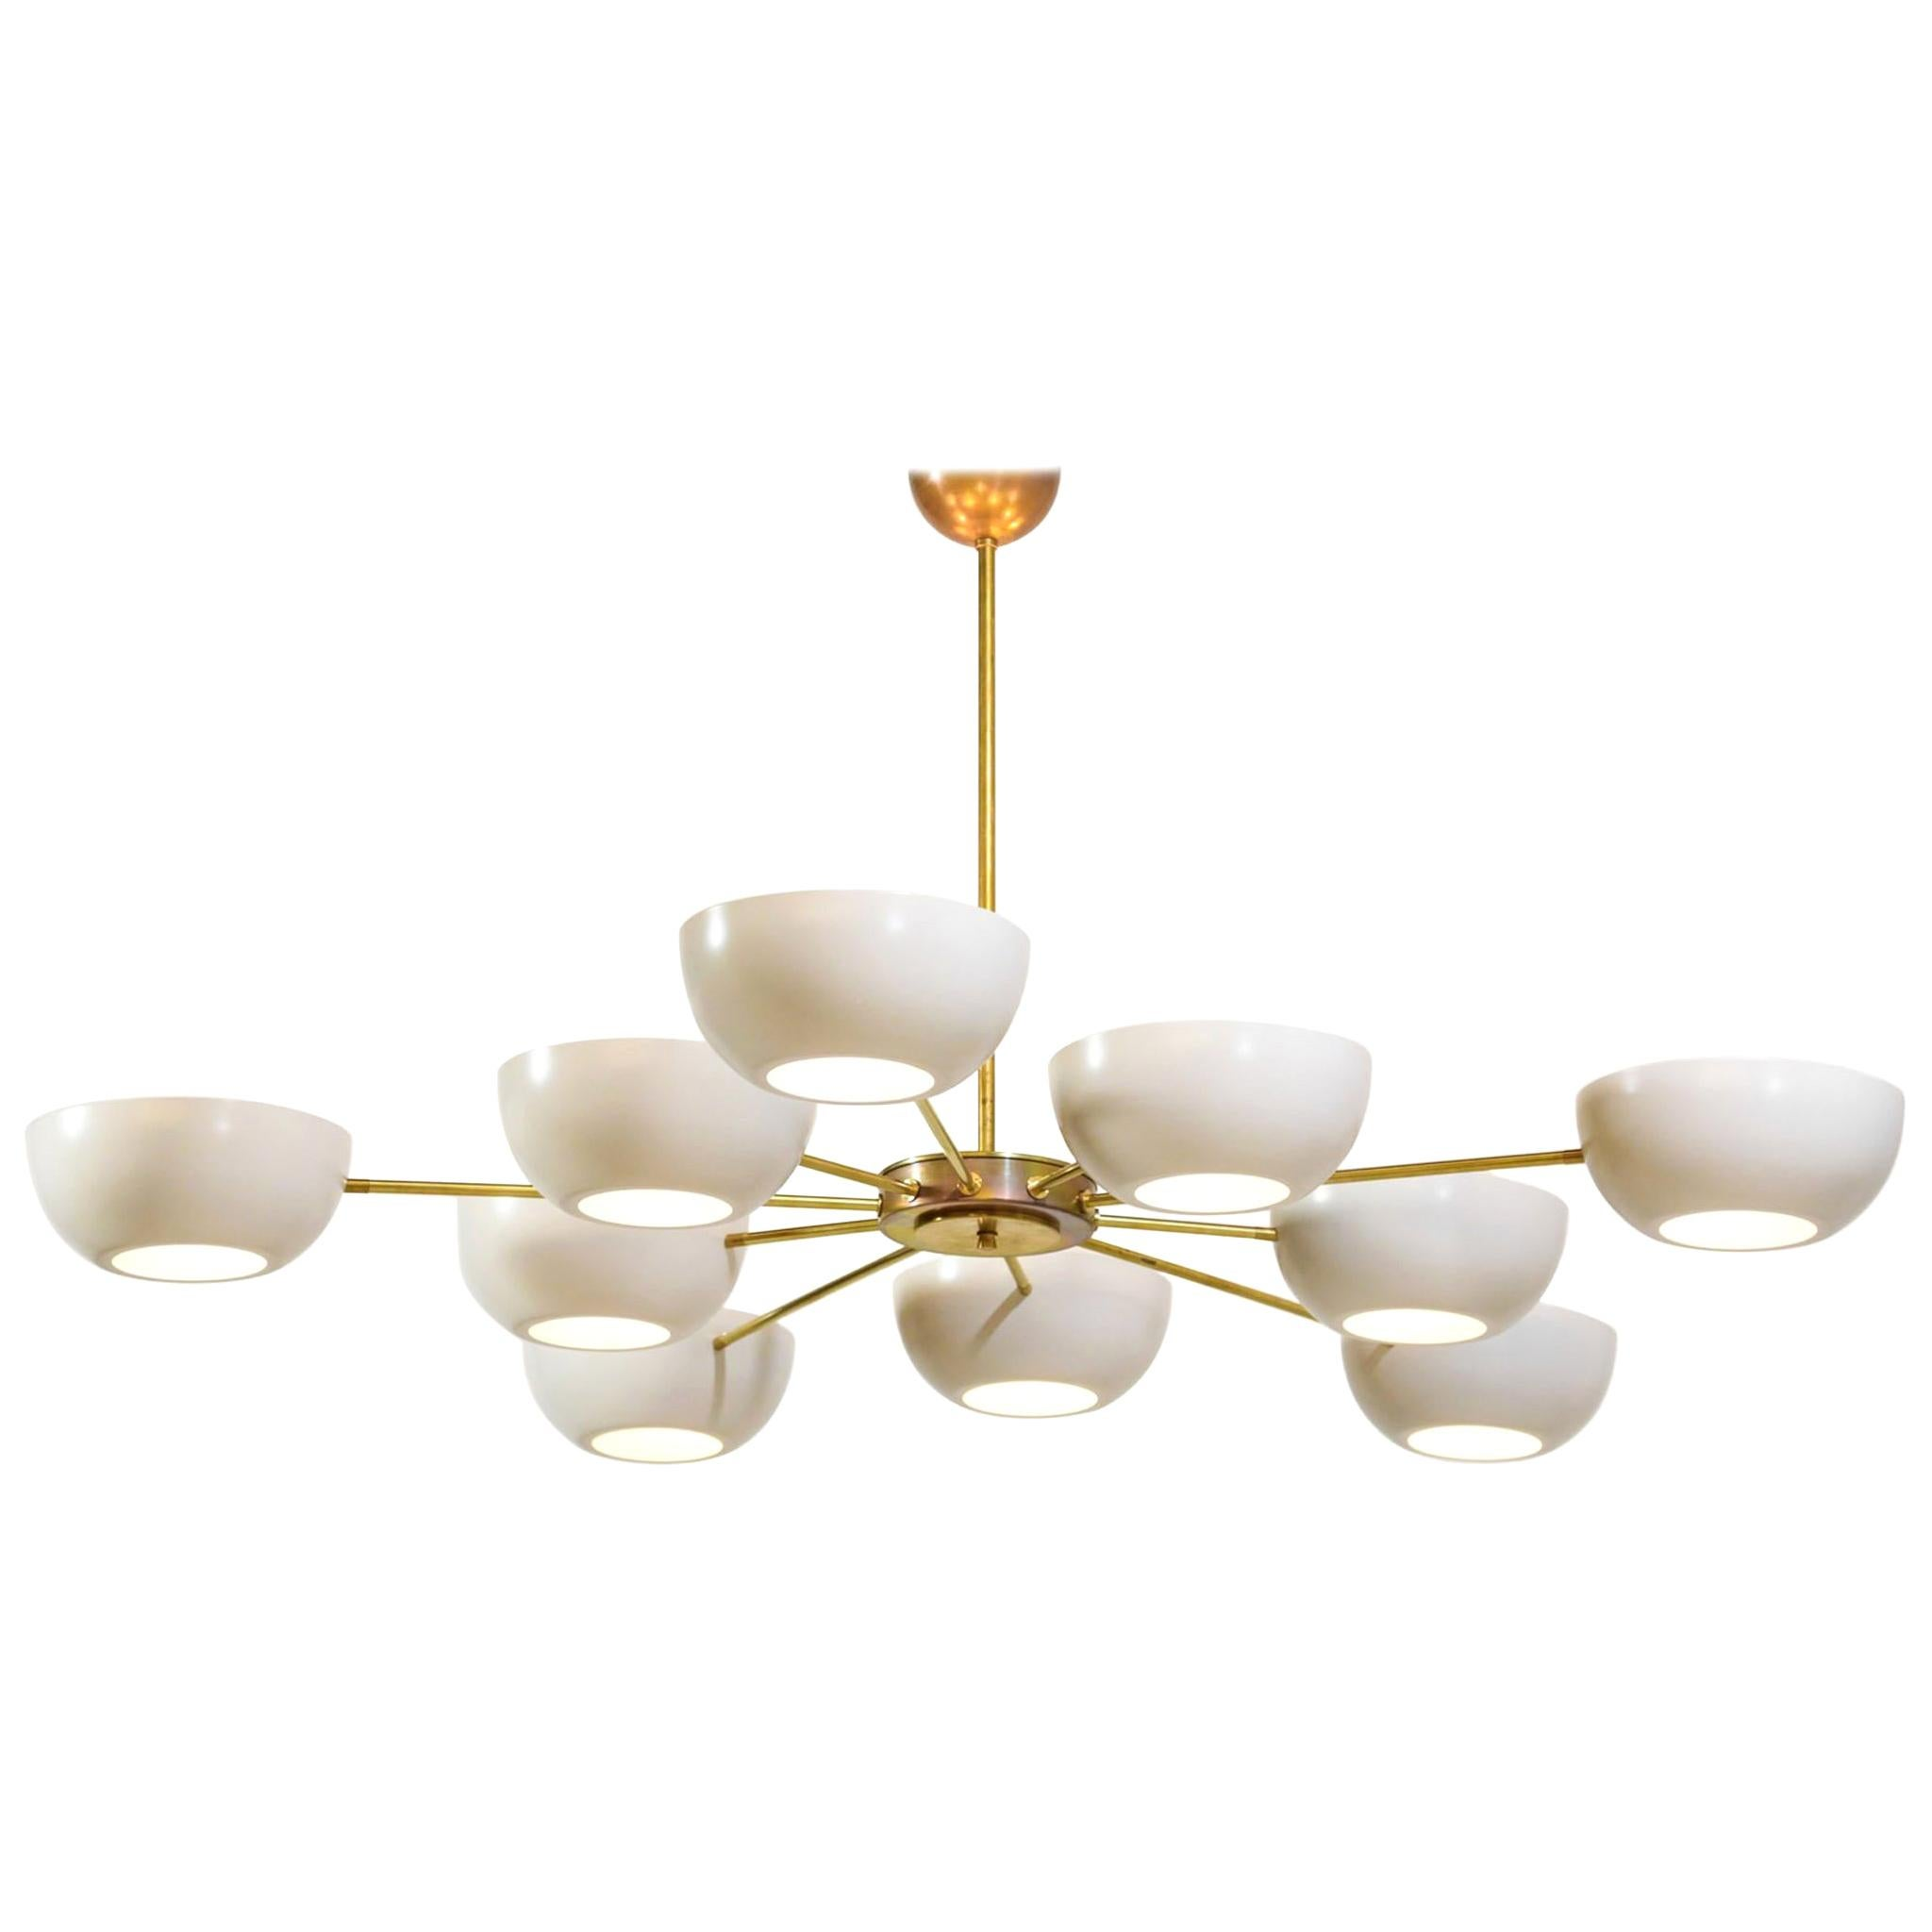 "Large Italian Modern Chandelier with 12 Arms in Gino Sarfatti Style ""Gaia"""